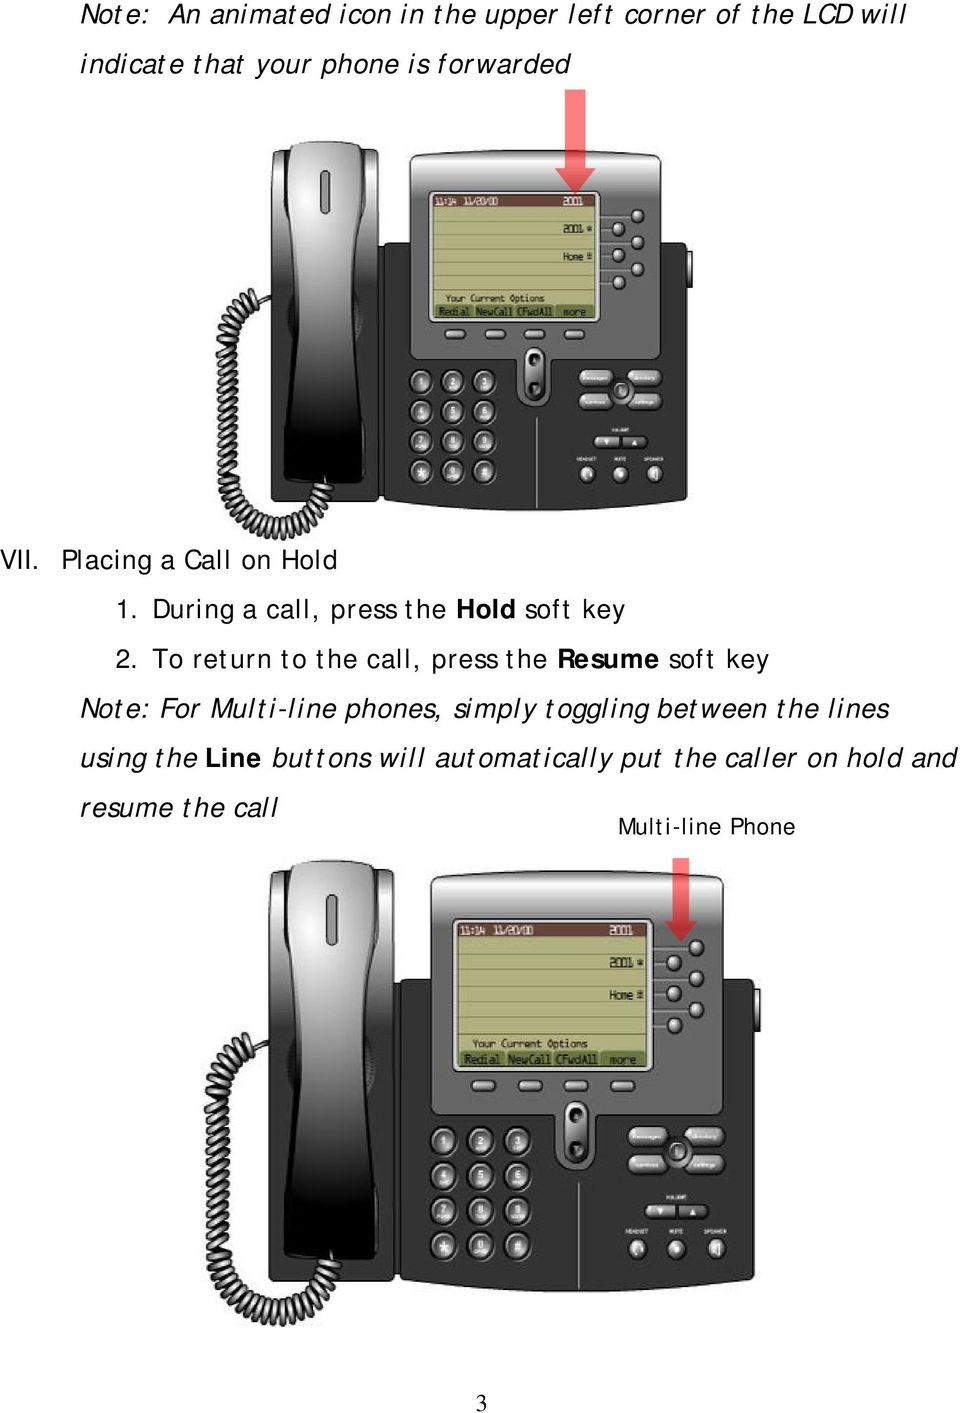 To return to the call, press the Resume soft key Note: For Multi-line phones, simply toggling